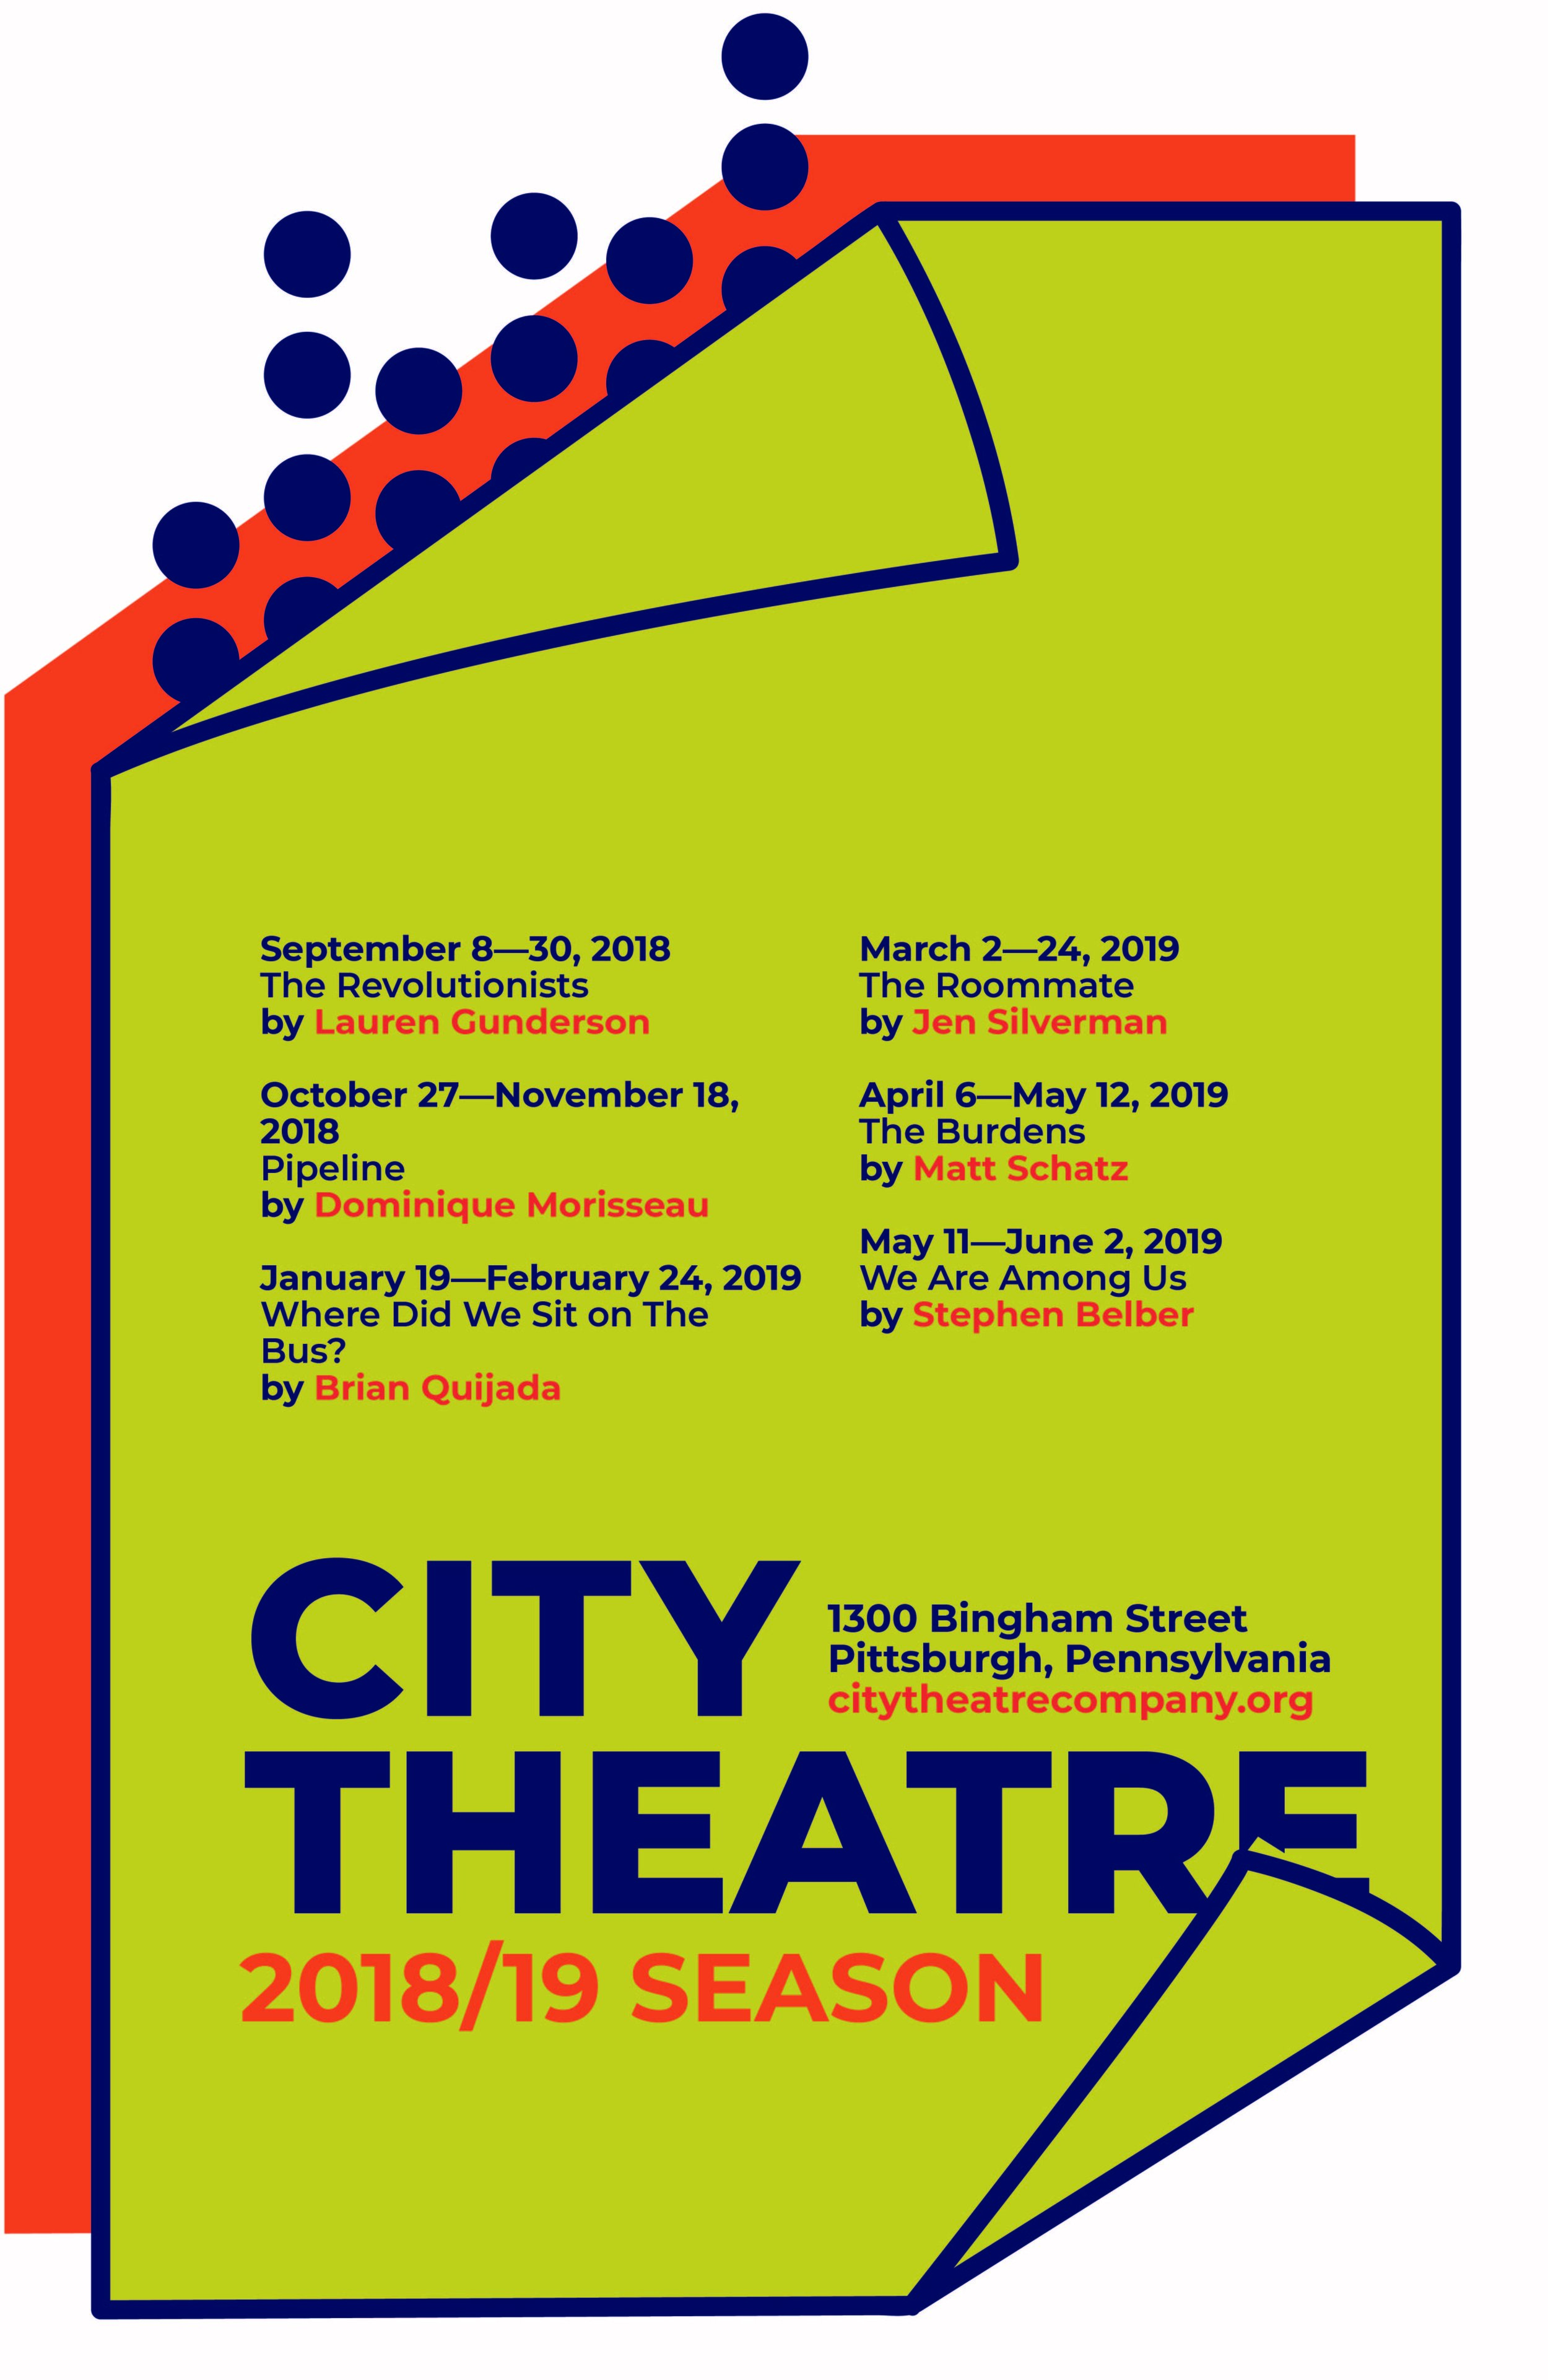 City Theatre Poster in Pittsburgh created in Adobe inDesign and Illustrator